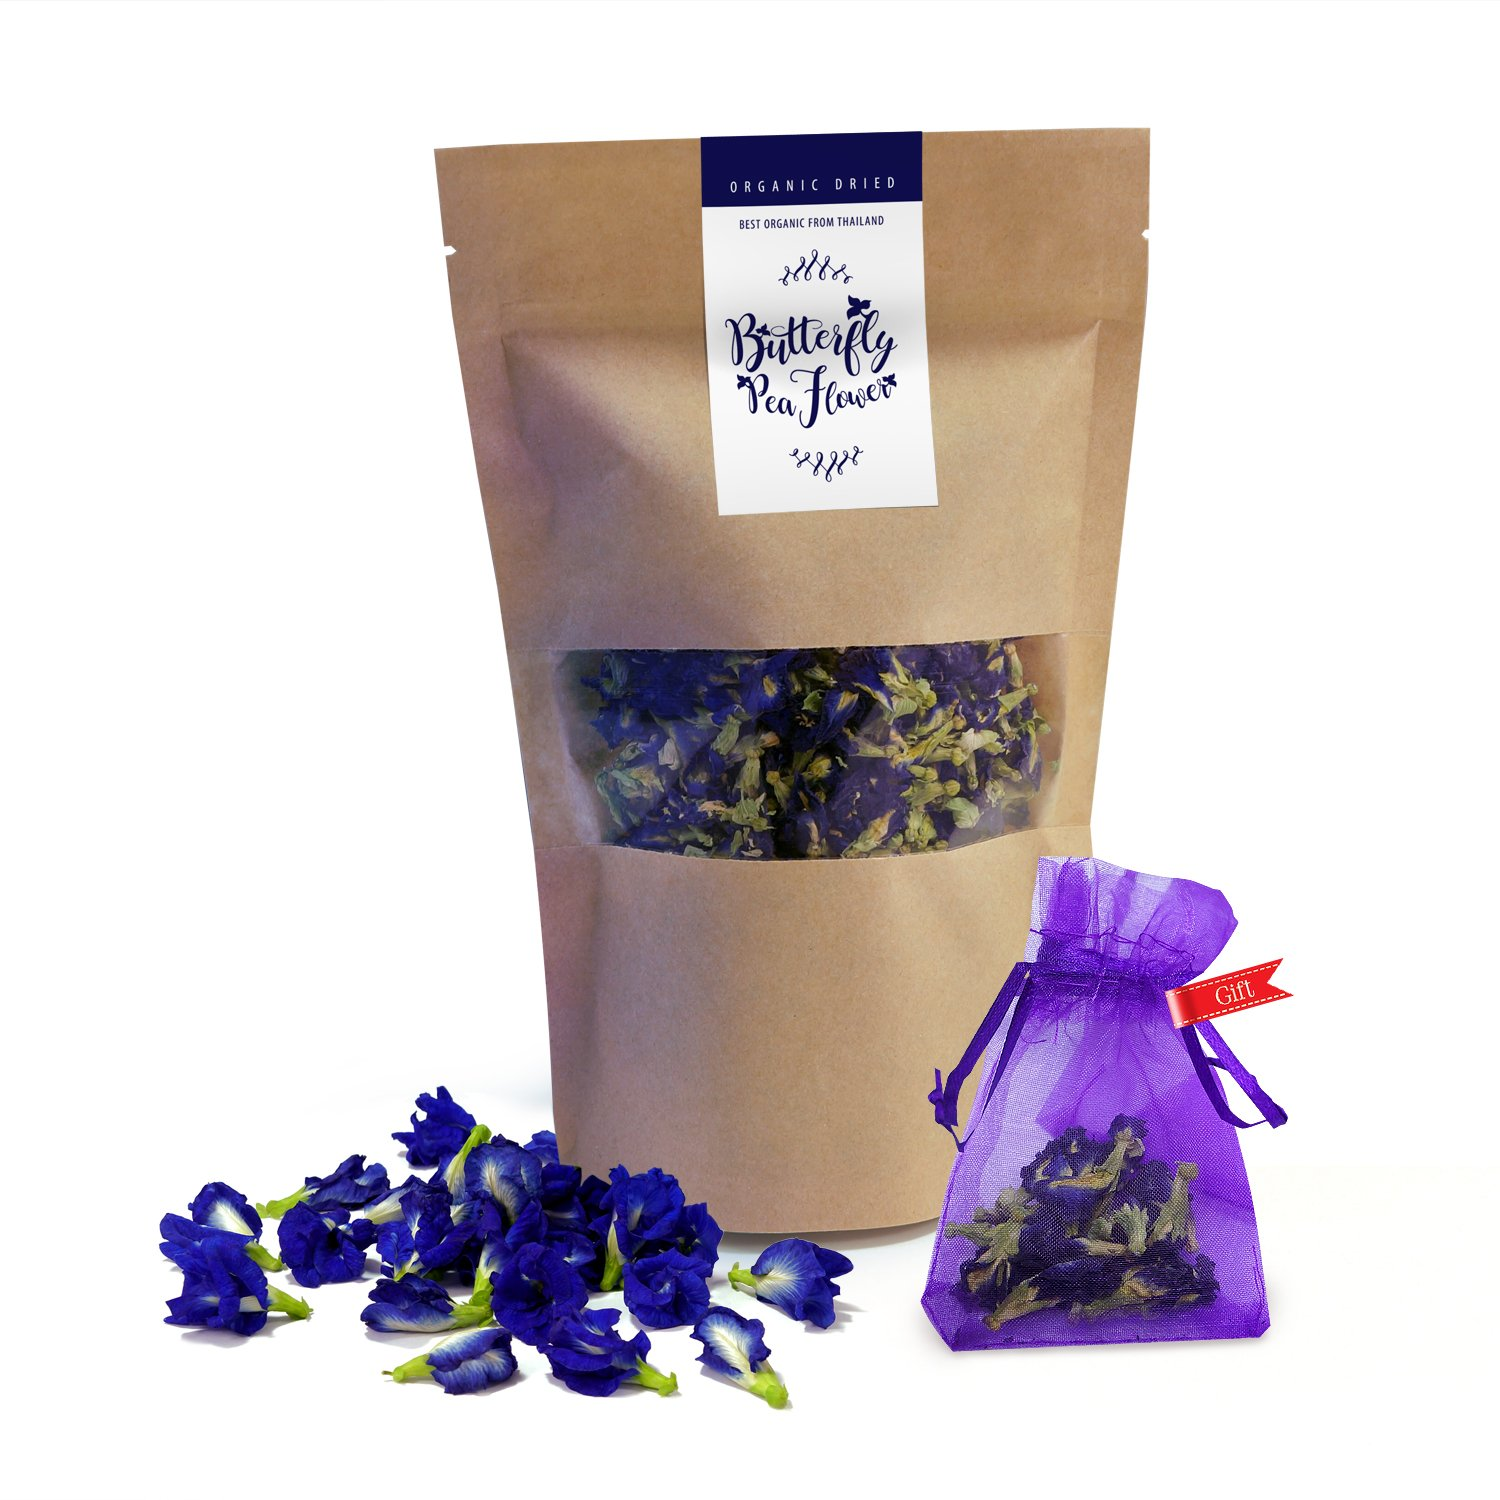 Thai Delicious Butterfly Pea Organic Dried Blue Flower Tea 1.60 oz.(50g.) (1)